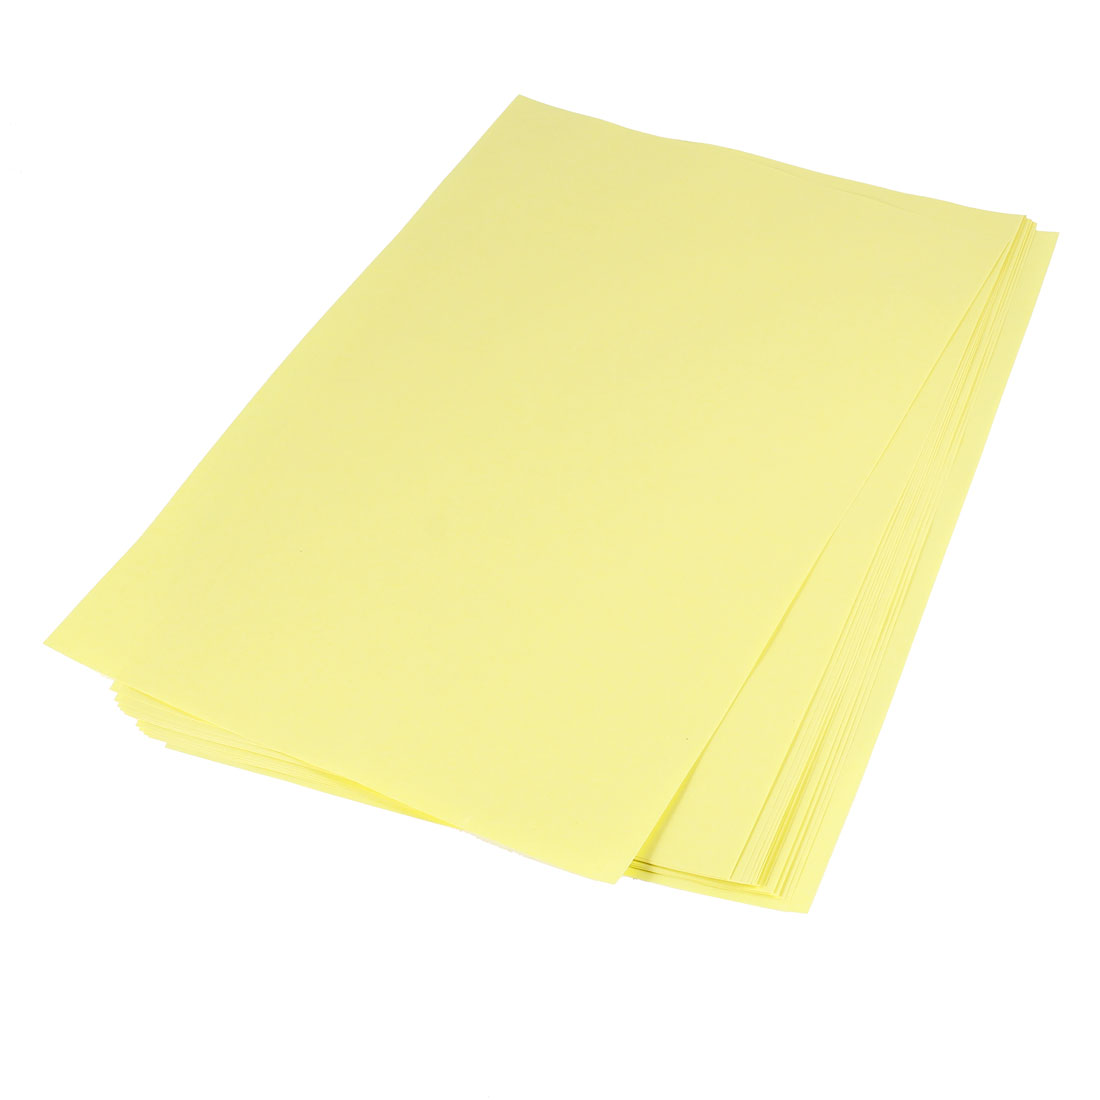 10 Pcs A4 Sheets Heat Transfer Paper for DIY PCB Electronic Phototype